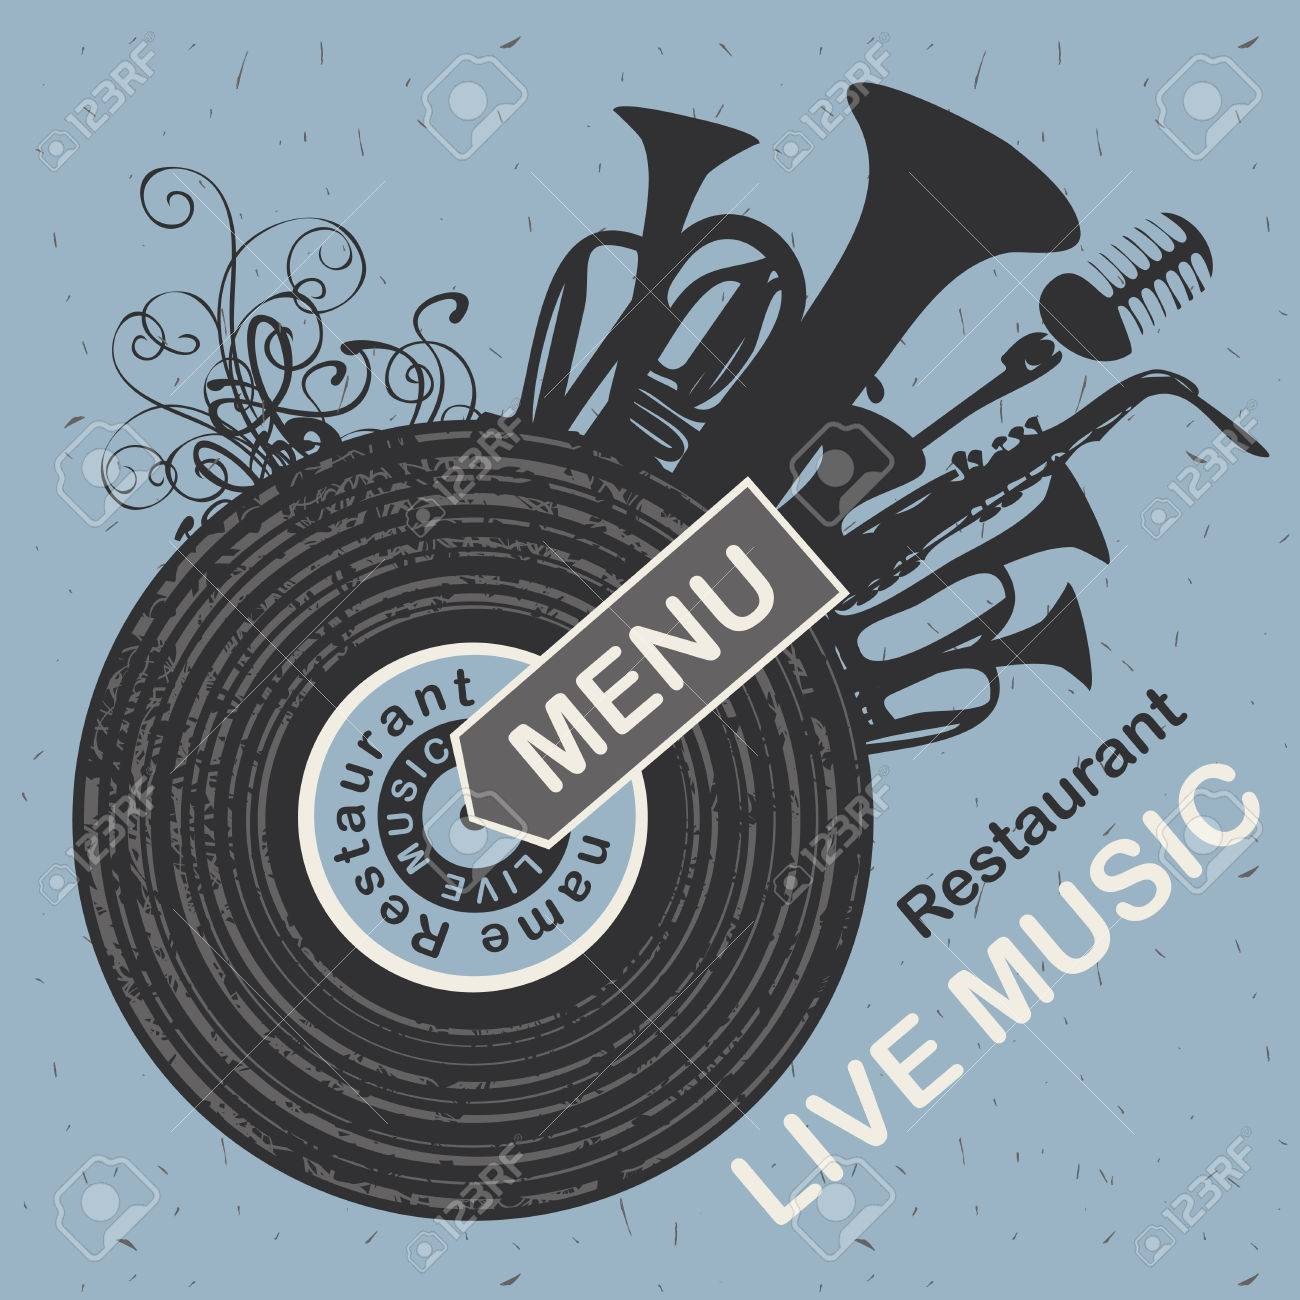 banner for menu restaurant with live music patterned vinyl and musical instruments - 61057925